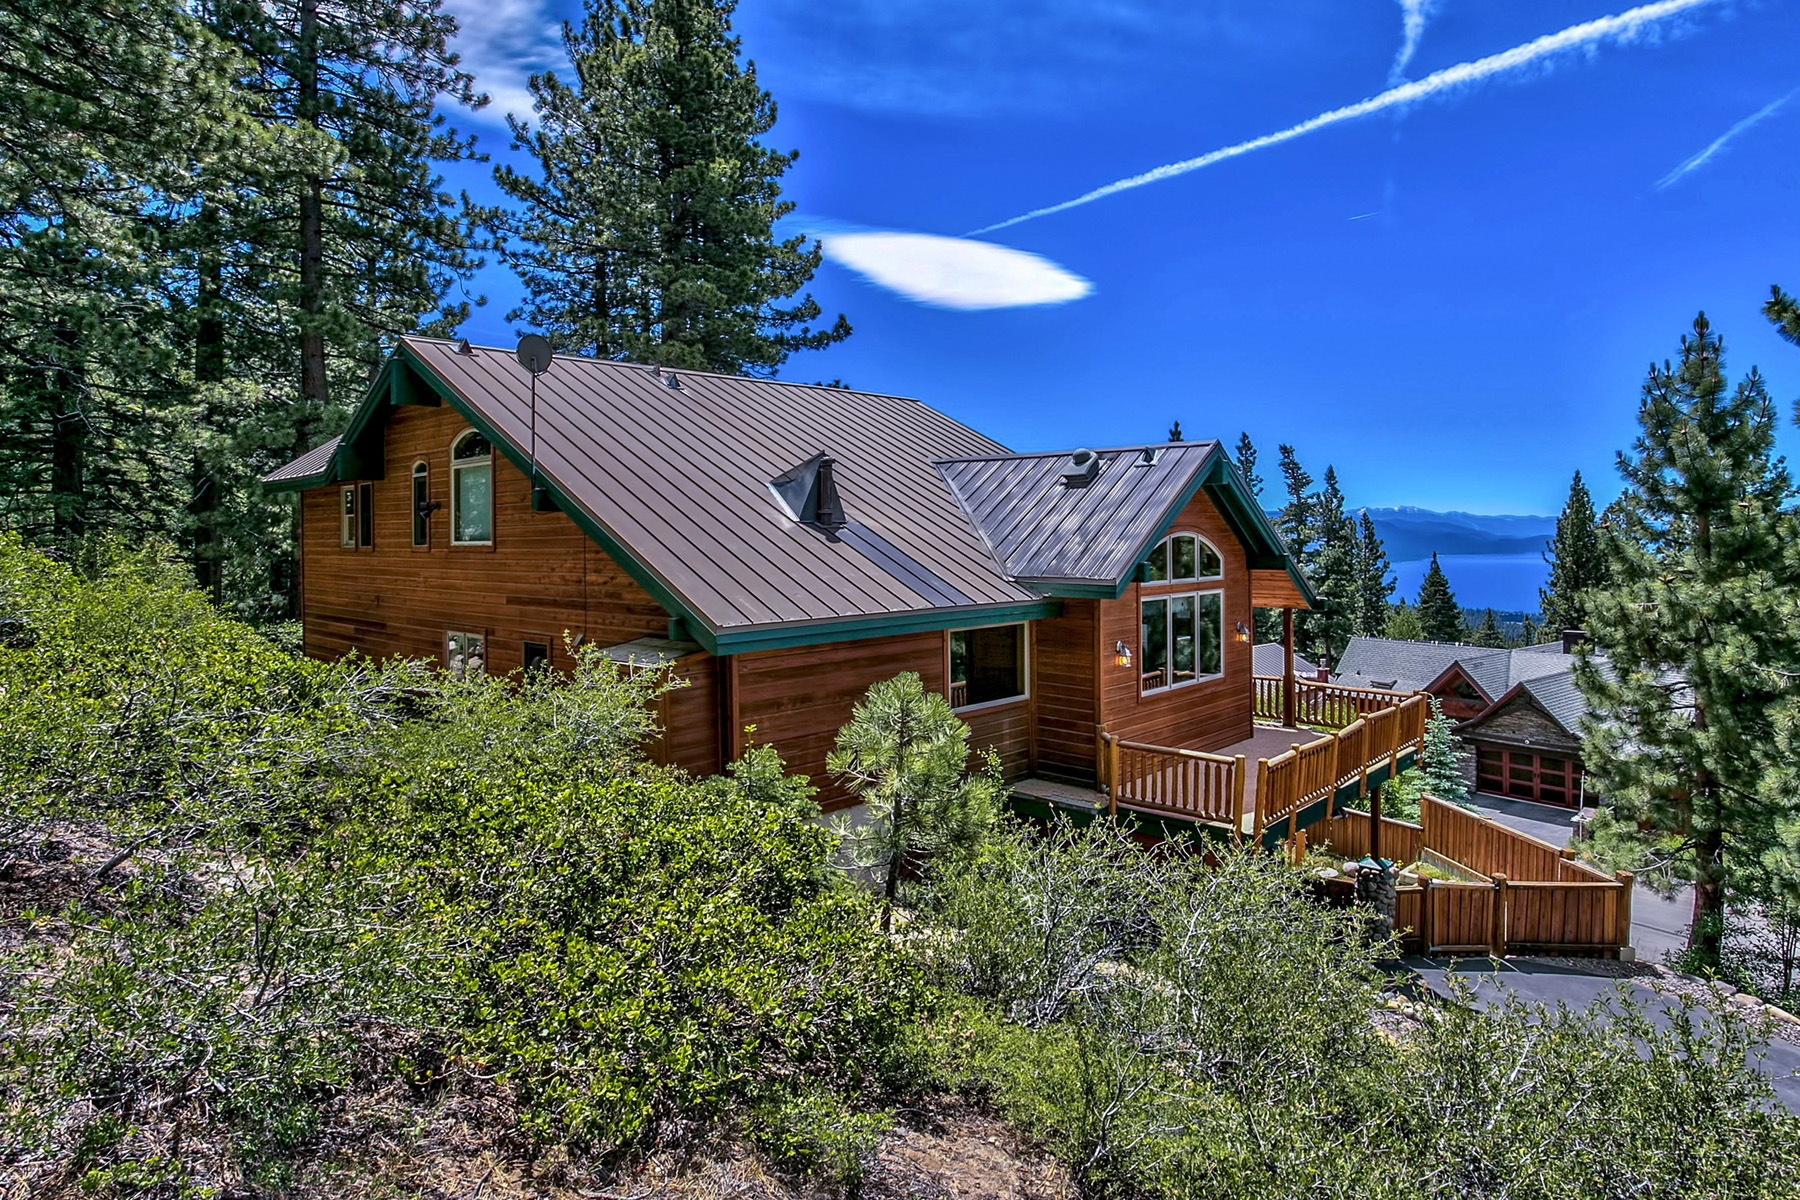 Maison unifamiliale pour l Vente à 1010 Apollo Way Incline Village, Nevada, 89451 Lake Tahoe, États-Unis